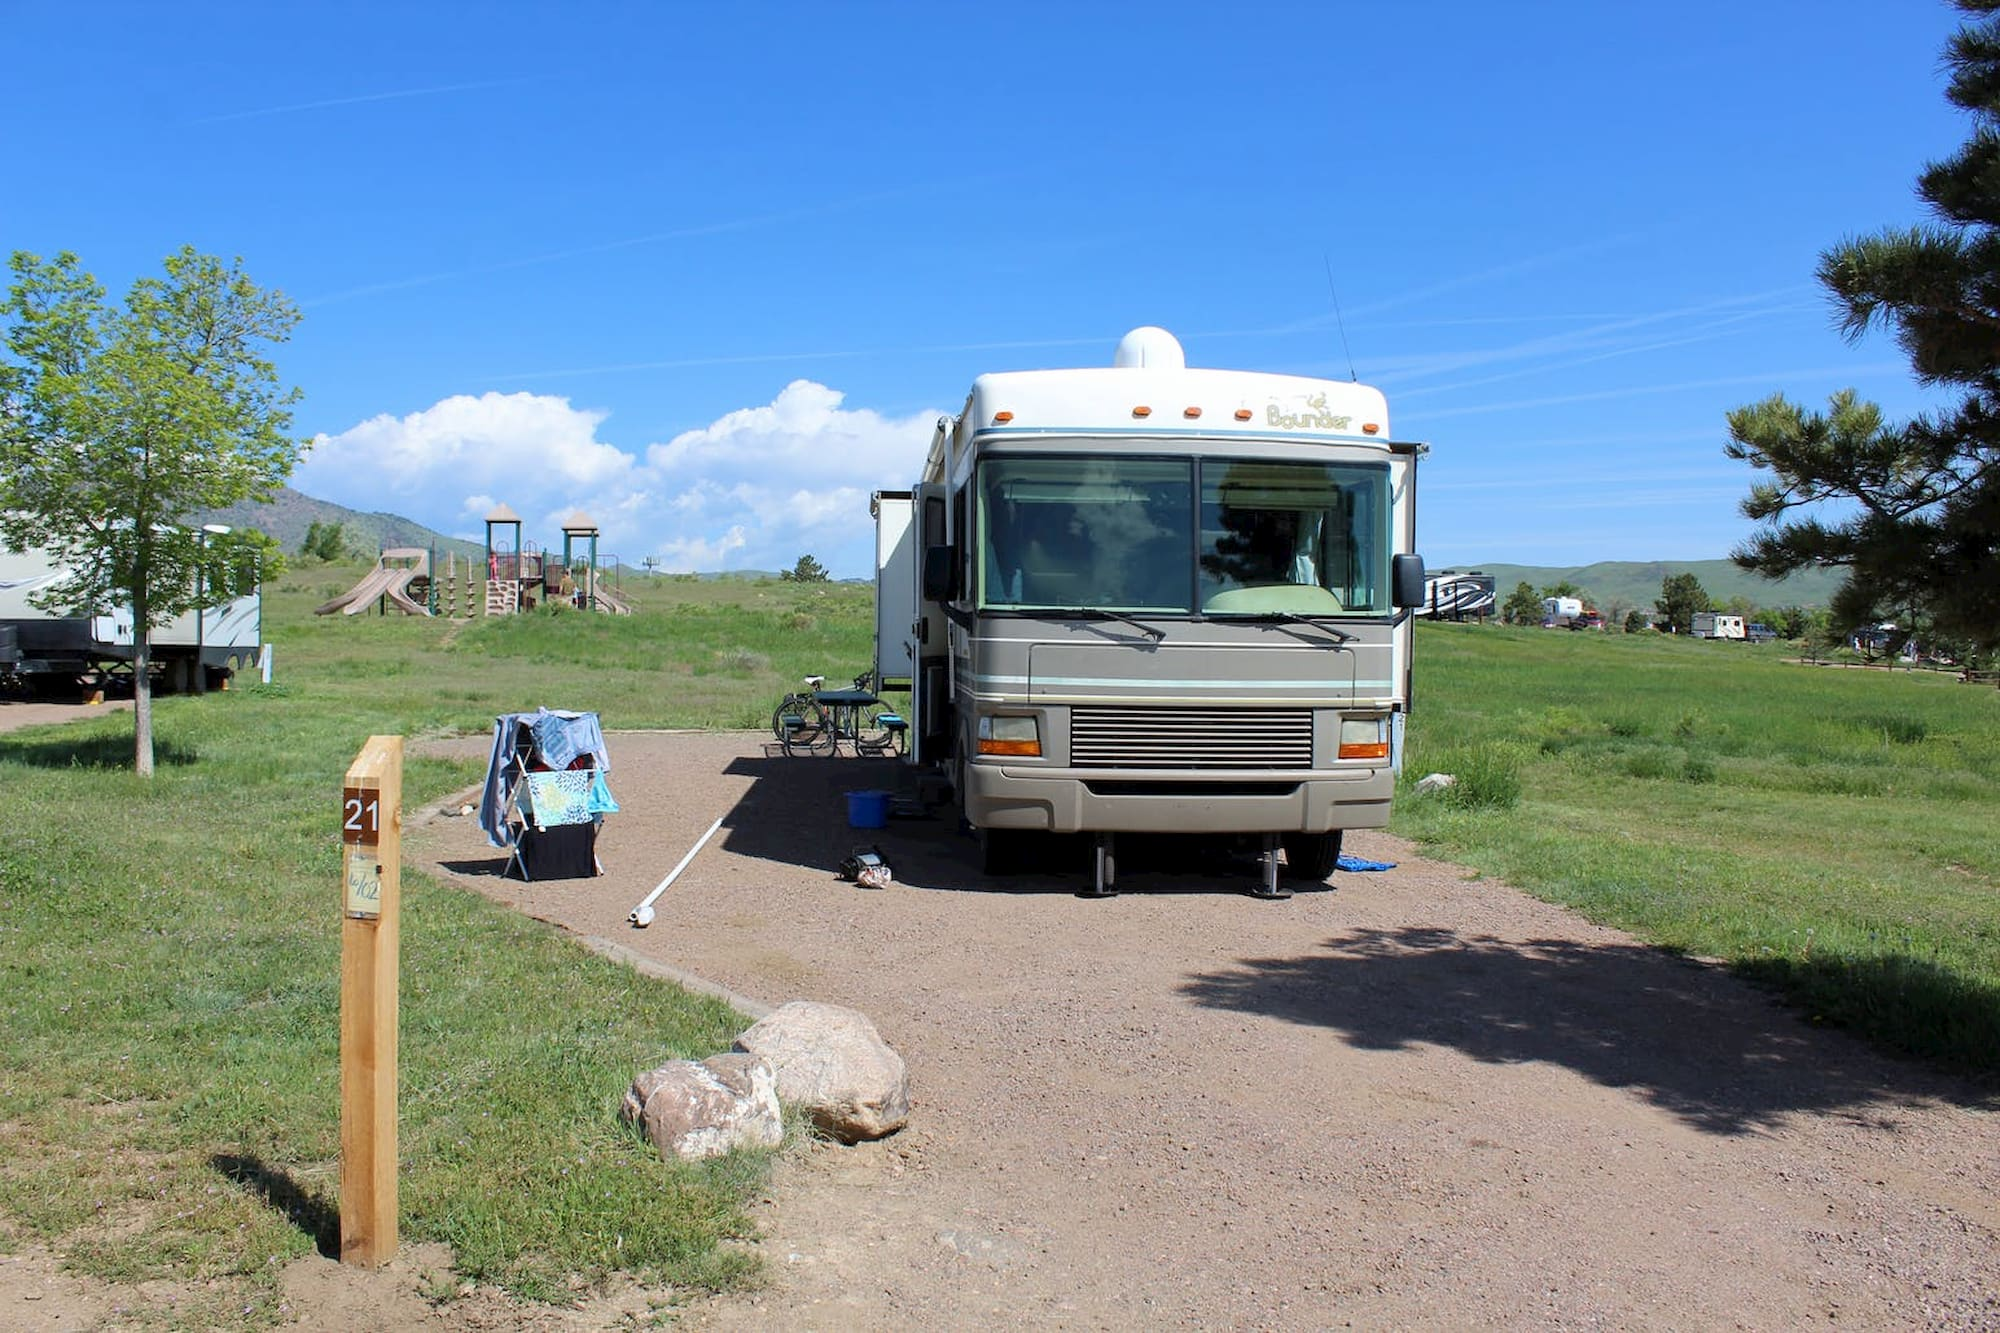 RV parked in gravel space beside lush green field on a clear sunny day.